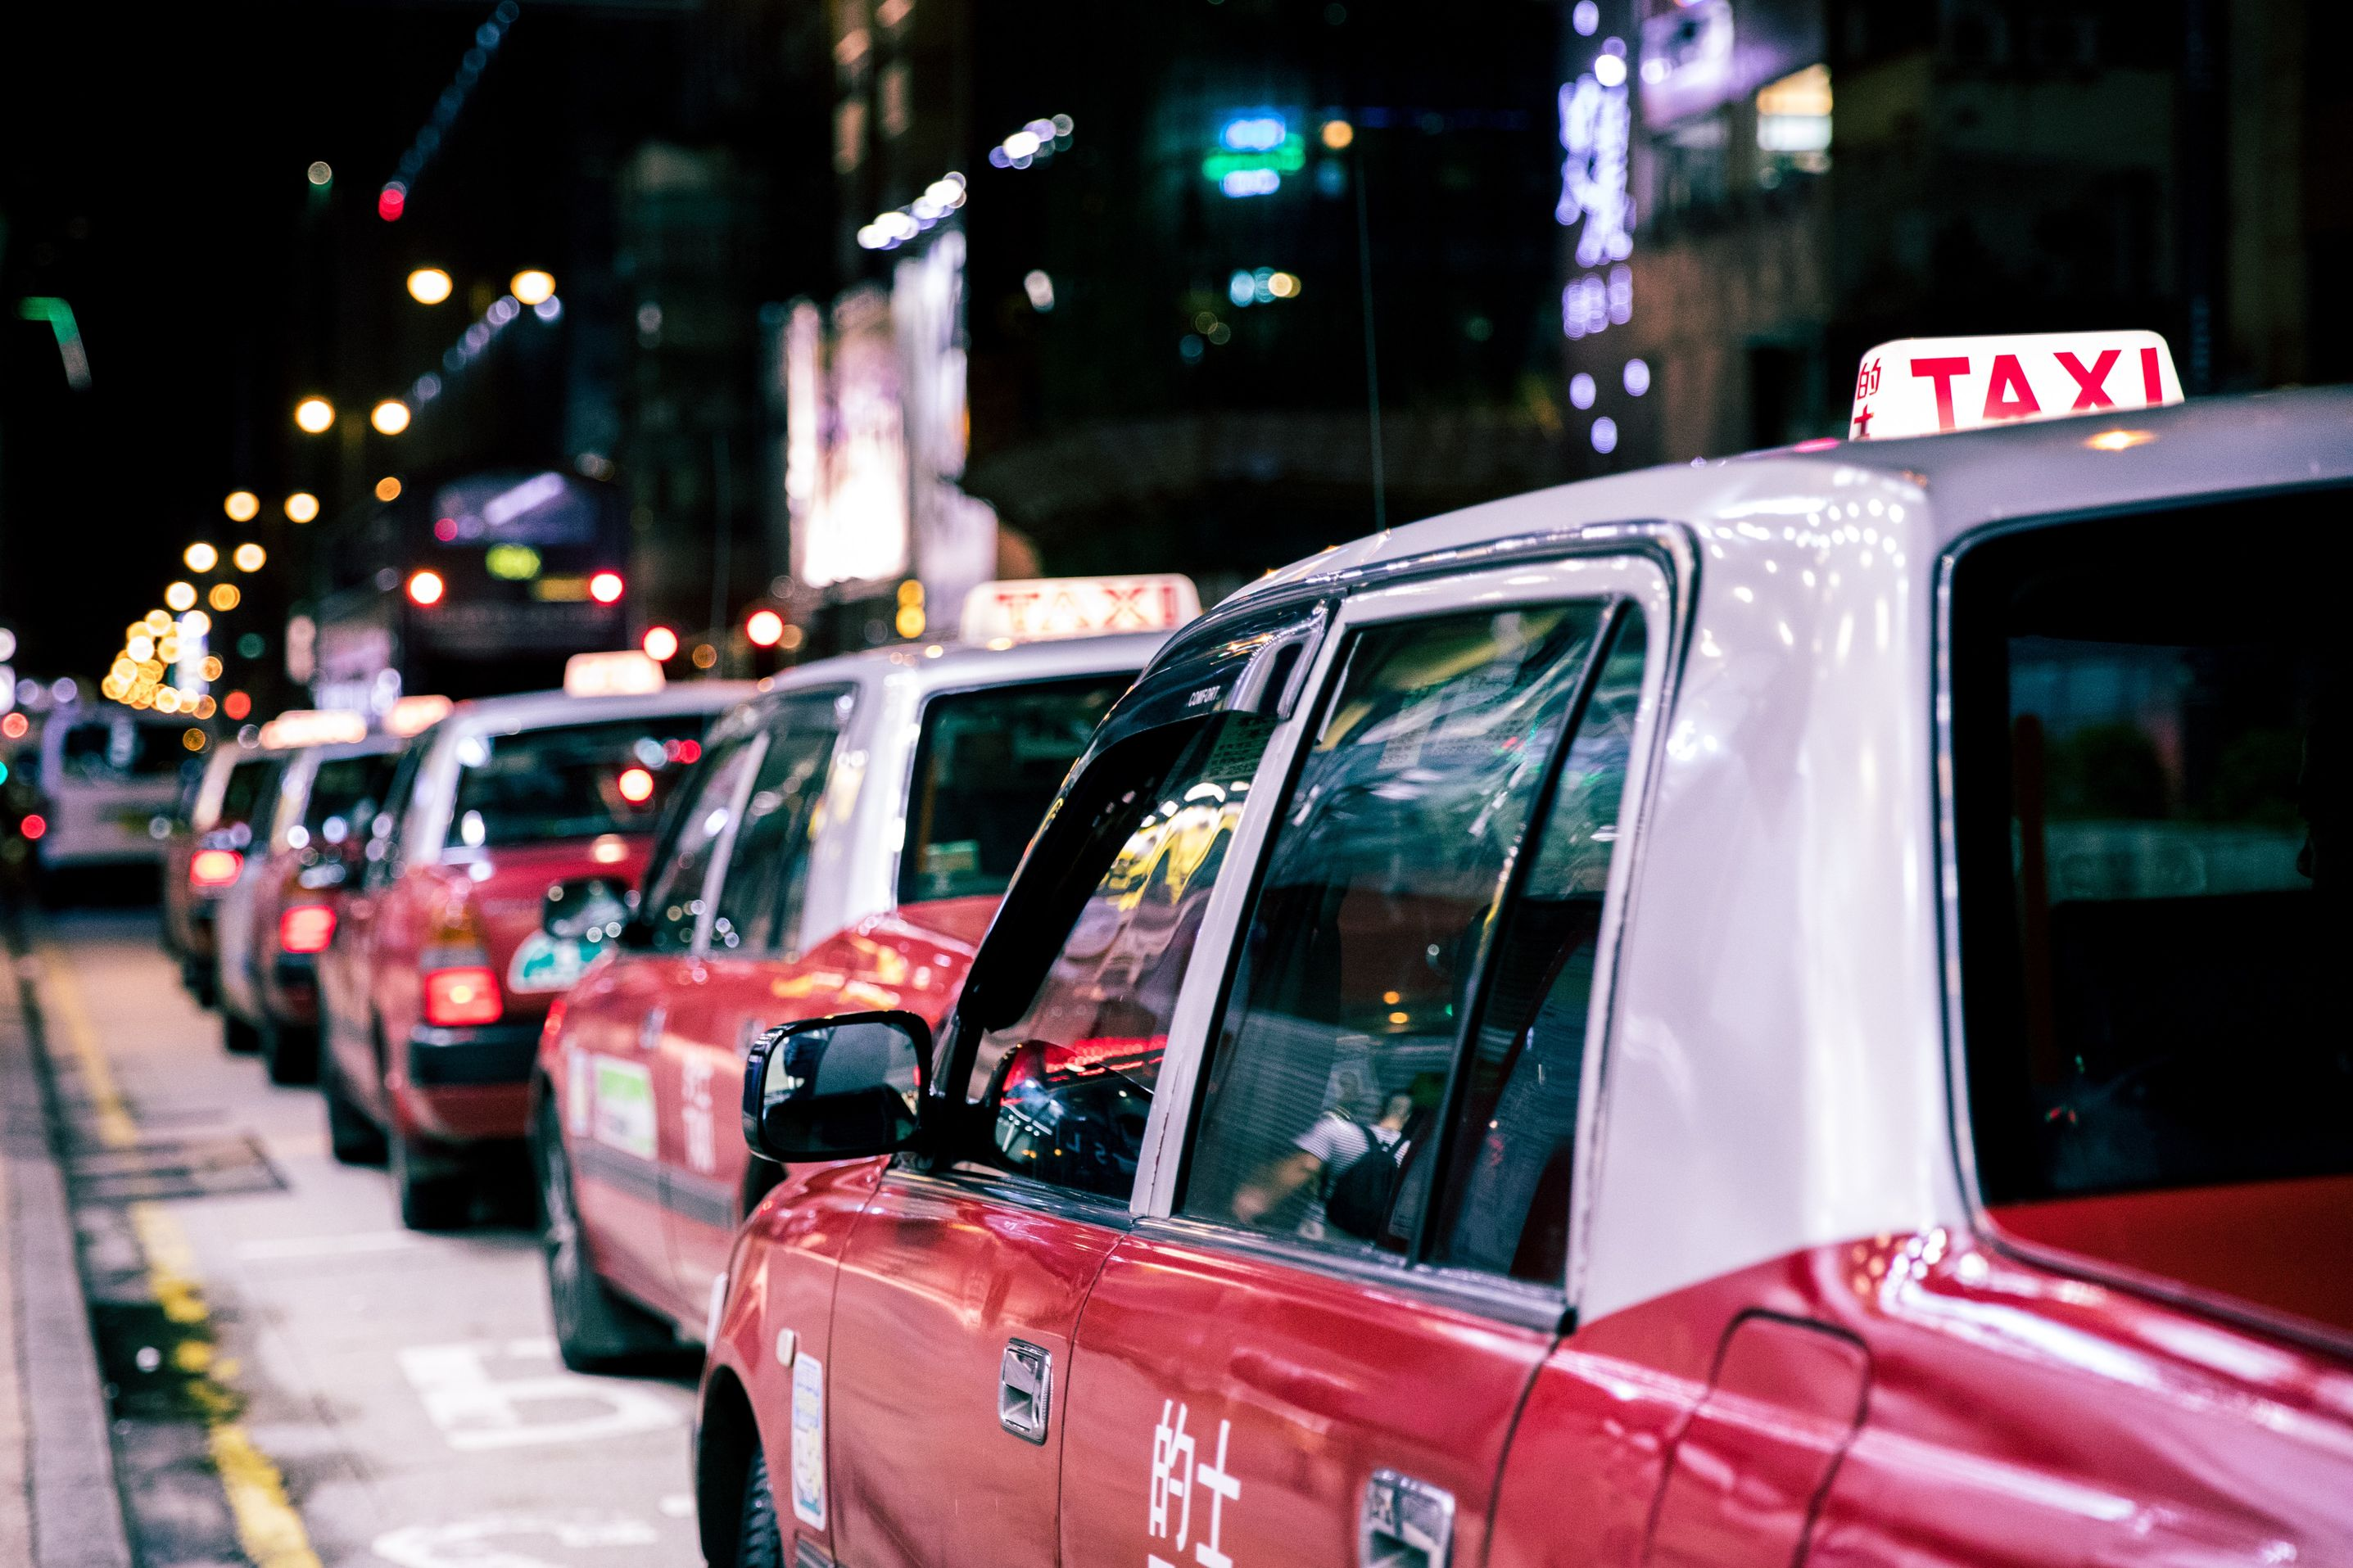 taxis in line at night